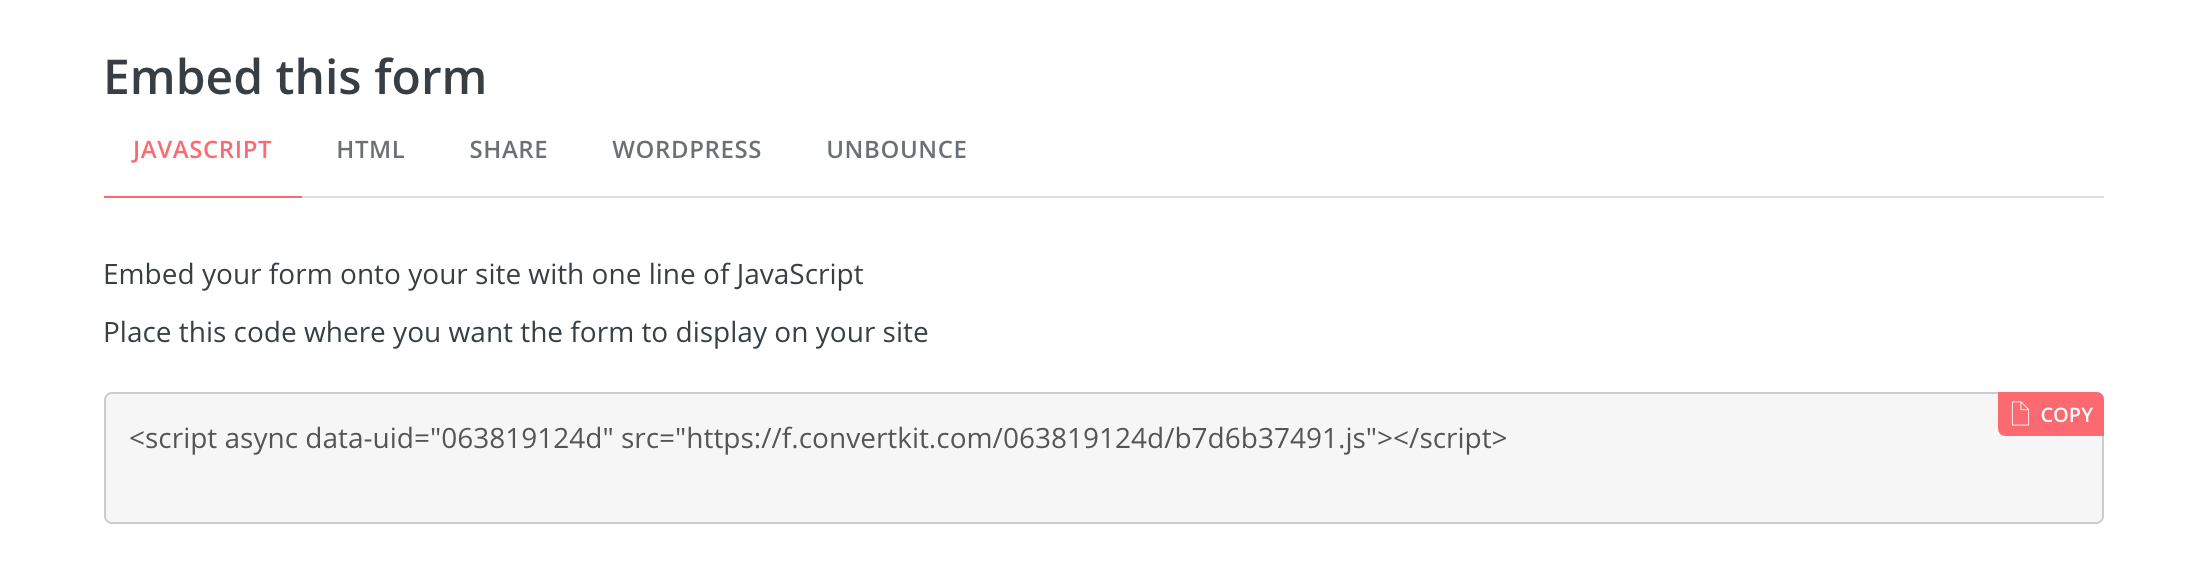 ConvertKit-Embed Options.png